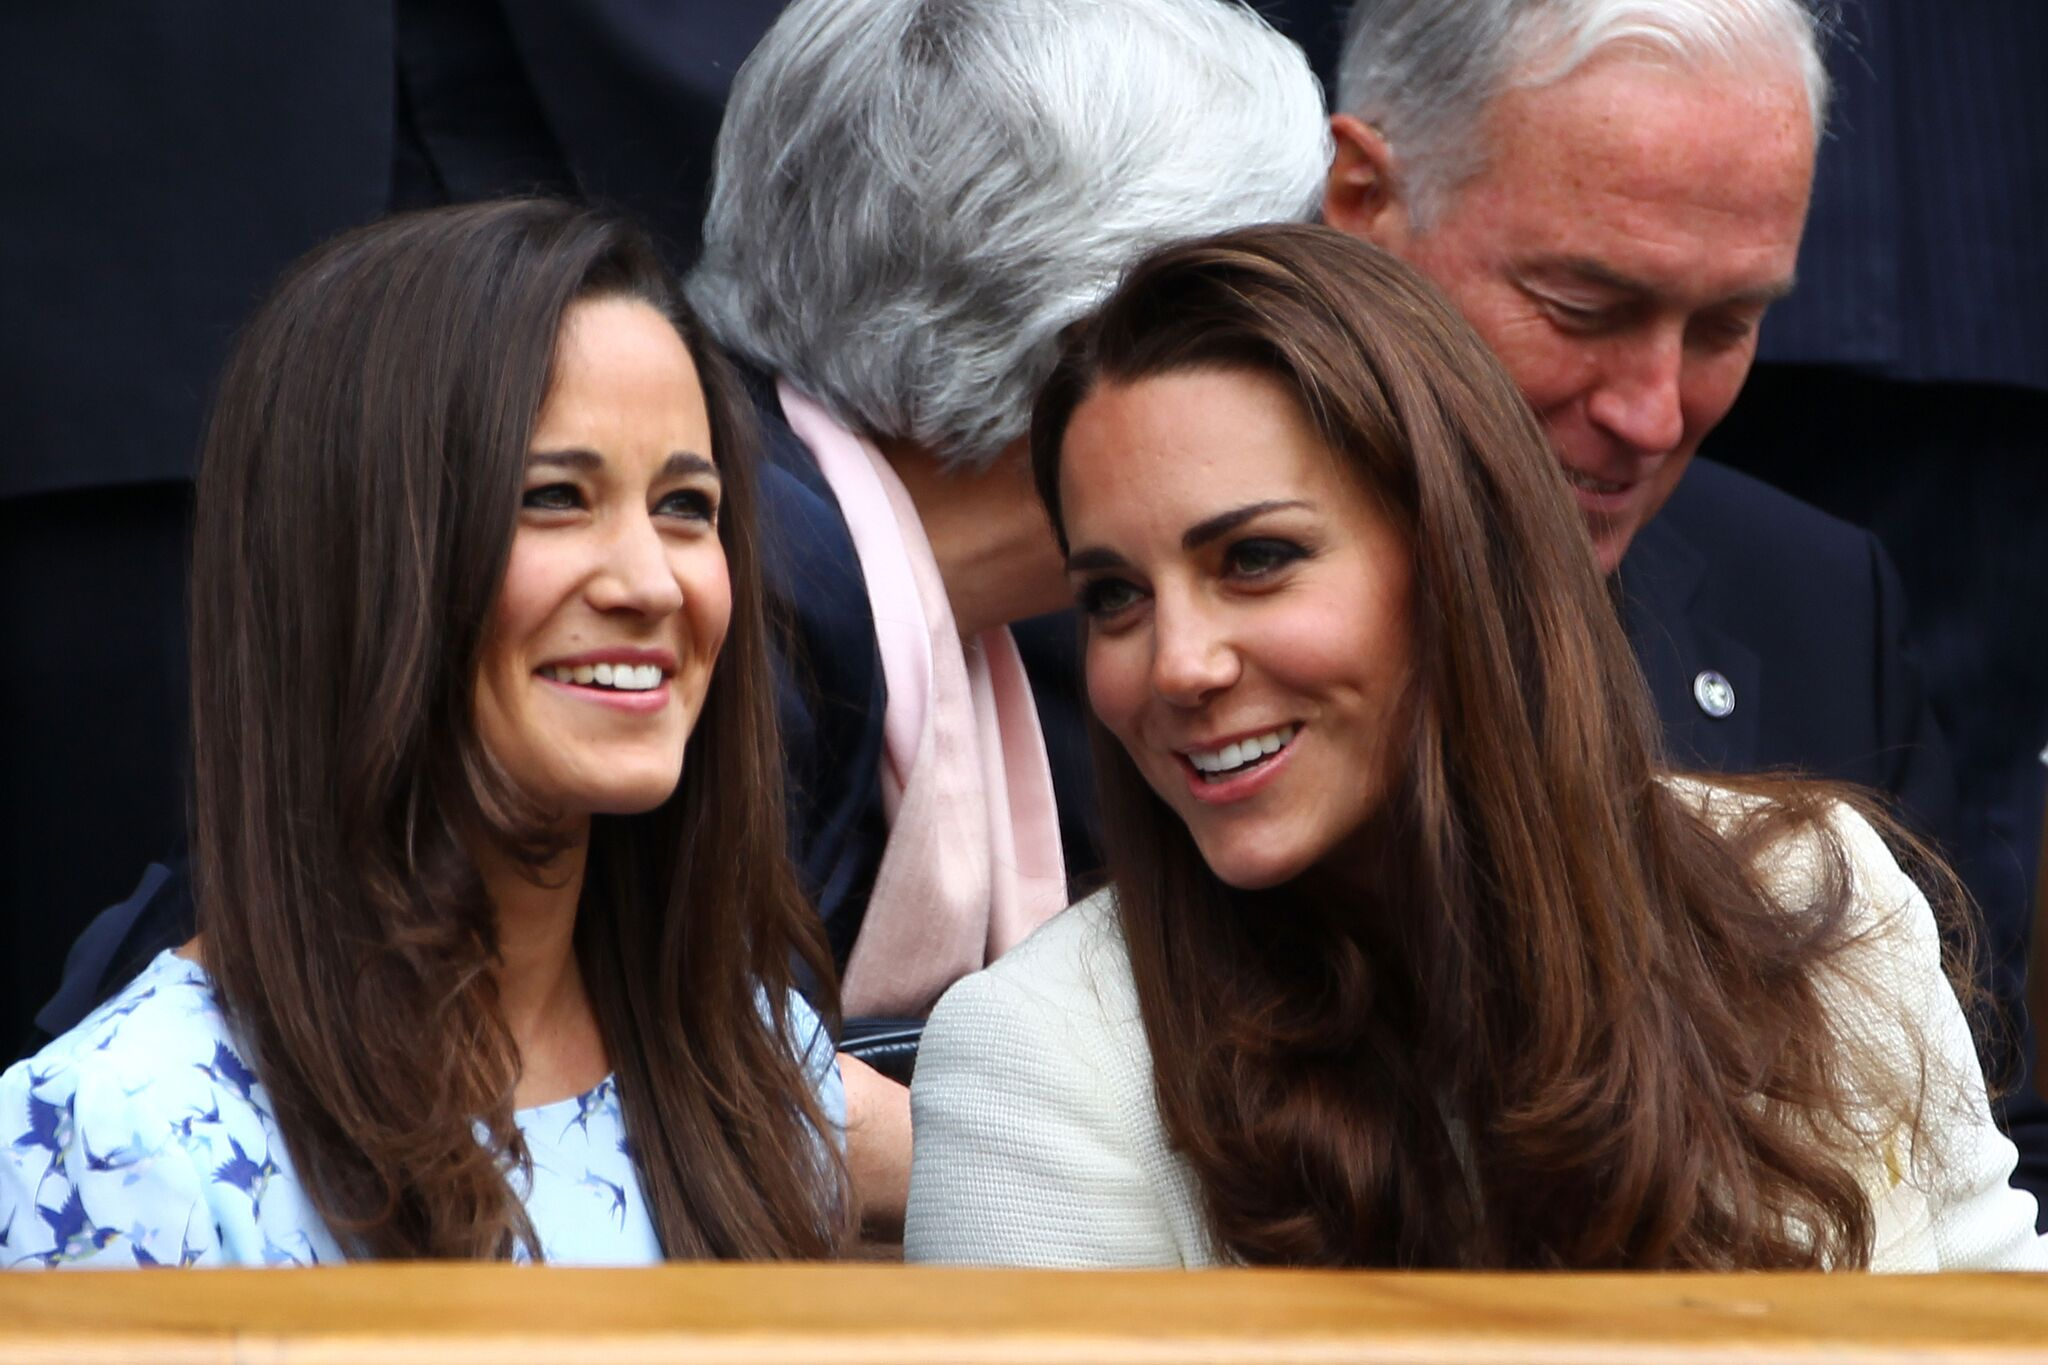 Pippa Middleton and Kate Middleton in the Royal Box at the Gentlemen's Singles | Getty Images